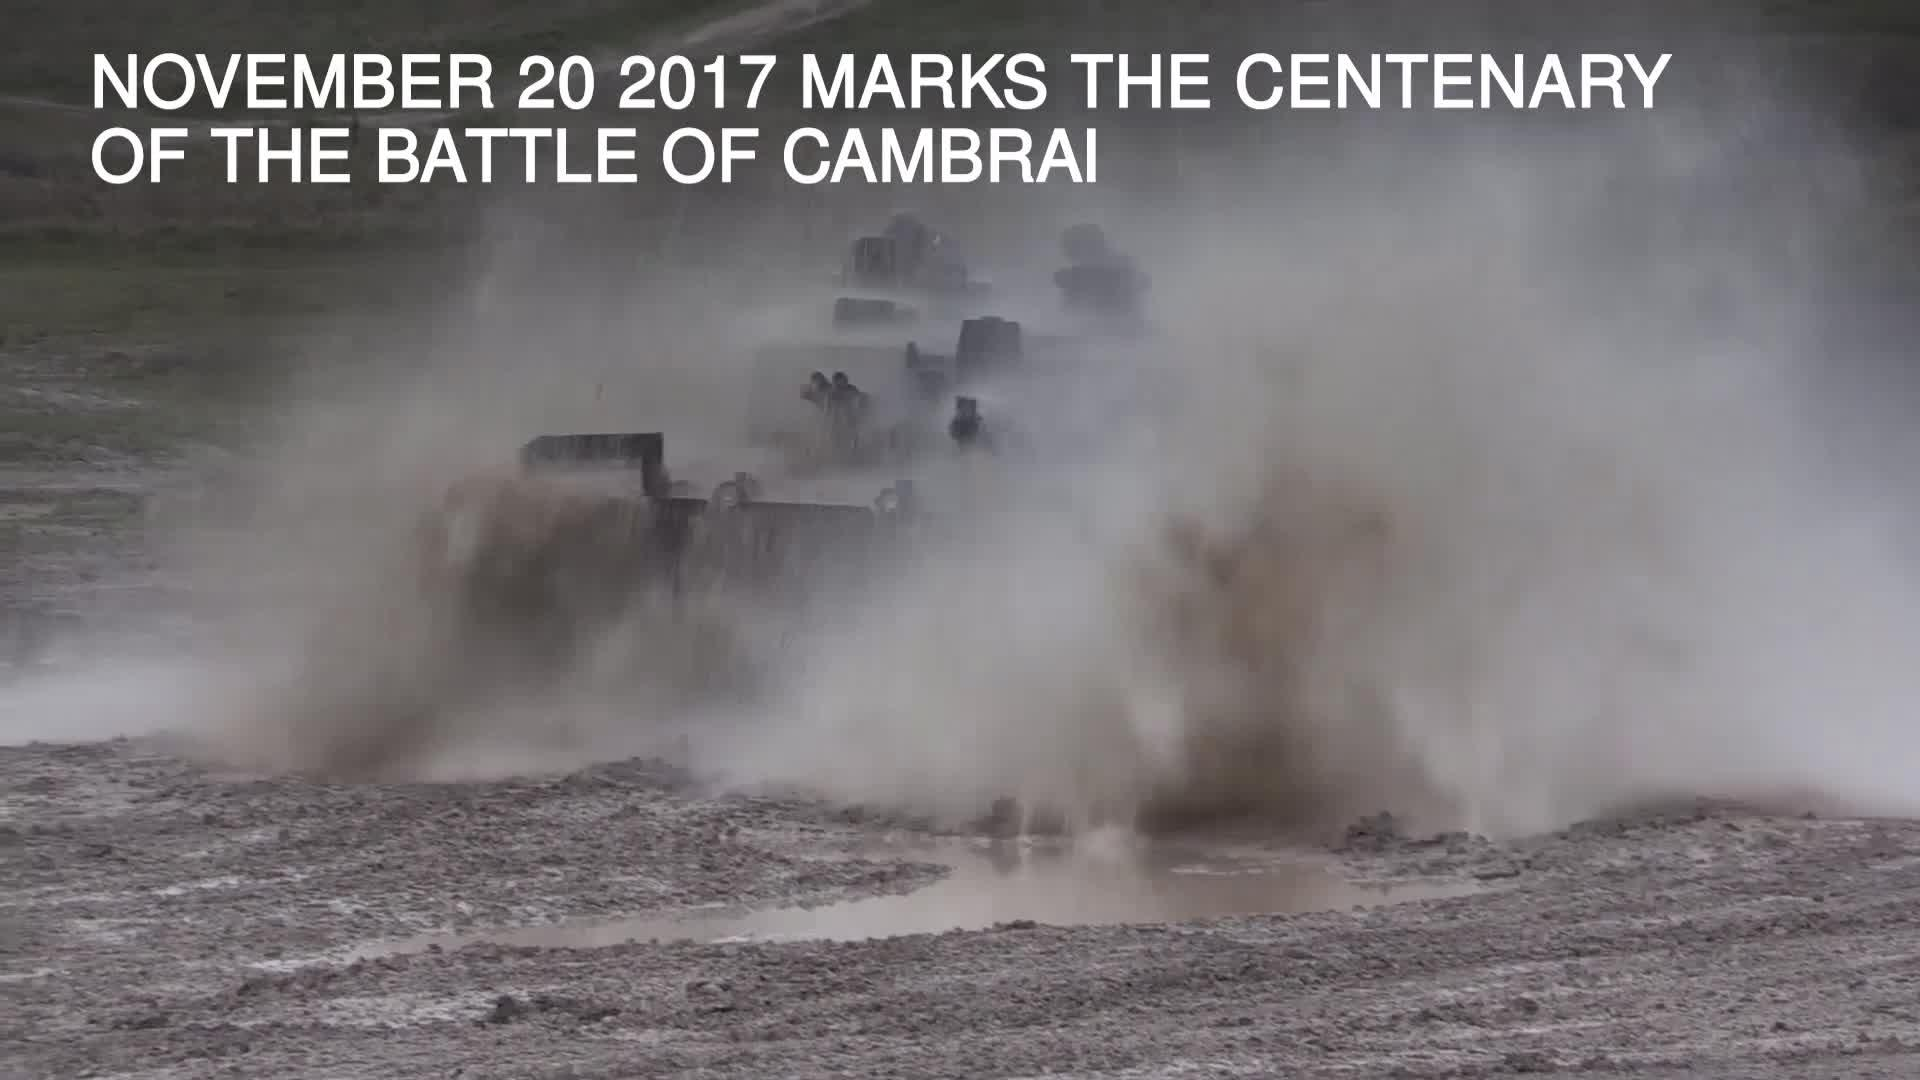 Tanks Here To Stay Say Army On Battle Of Cambrais 100 Year Story Cambrai 1917 Anniversary Bt